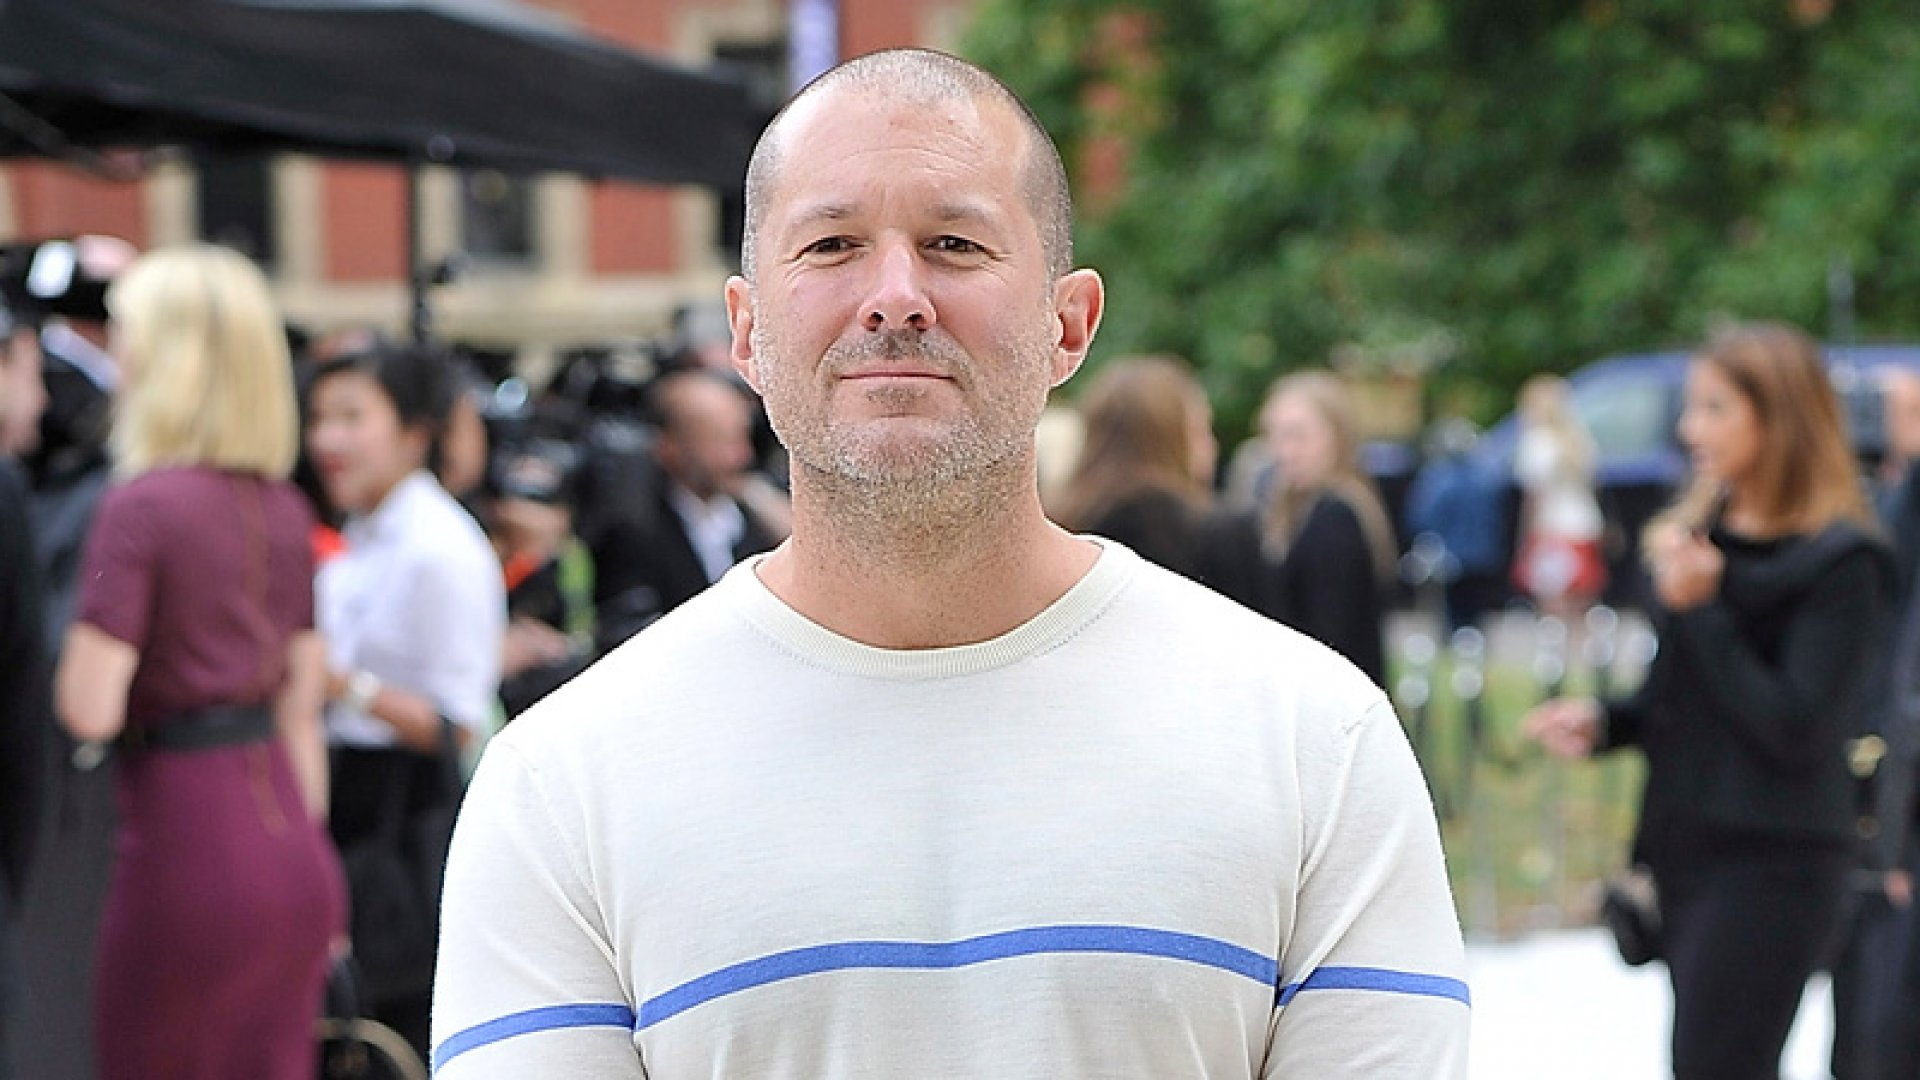 Simplicity Sells: Famed Designers Jony Ive and Marc Newson Put Philosophy Up for Auction